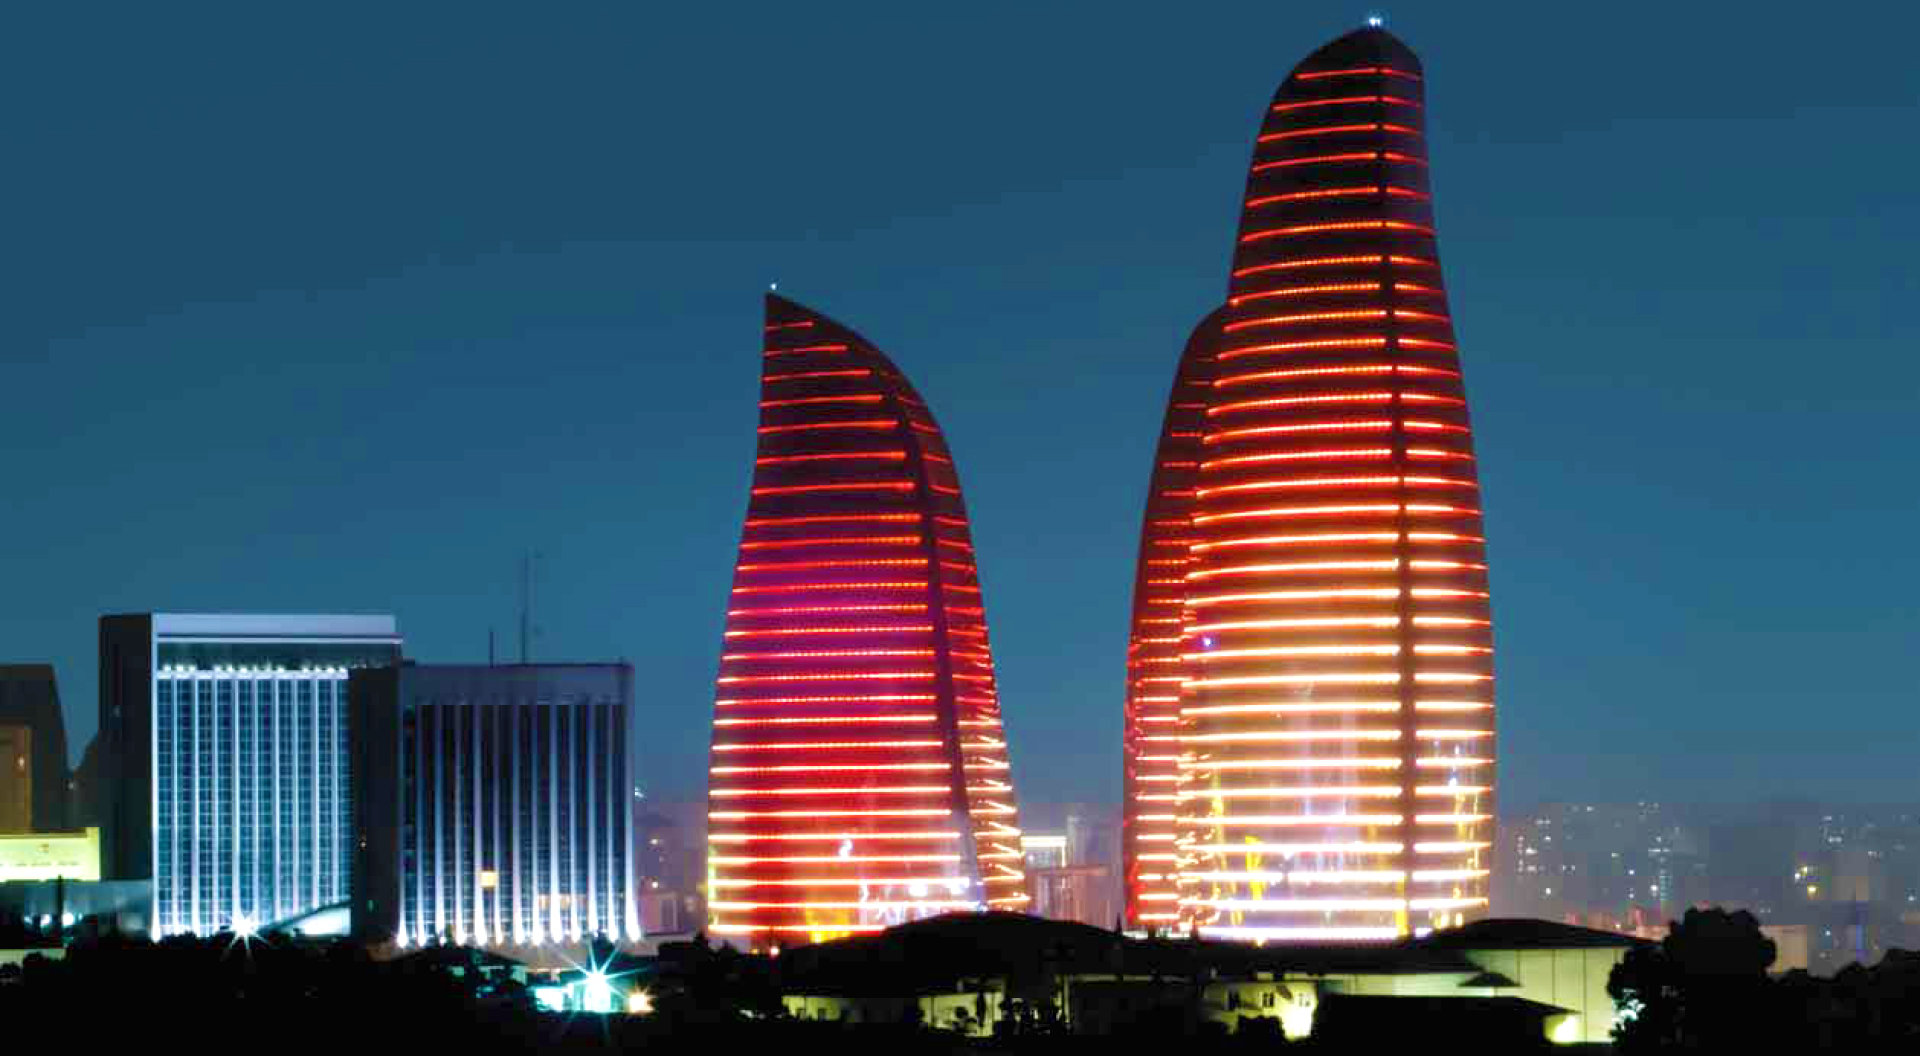 Traxon adds excitement to Flame Towers in Baku, Azerbaijan